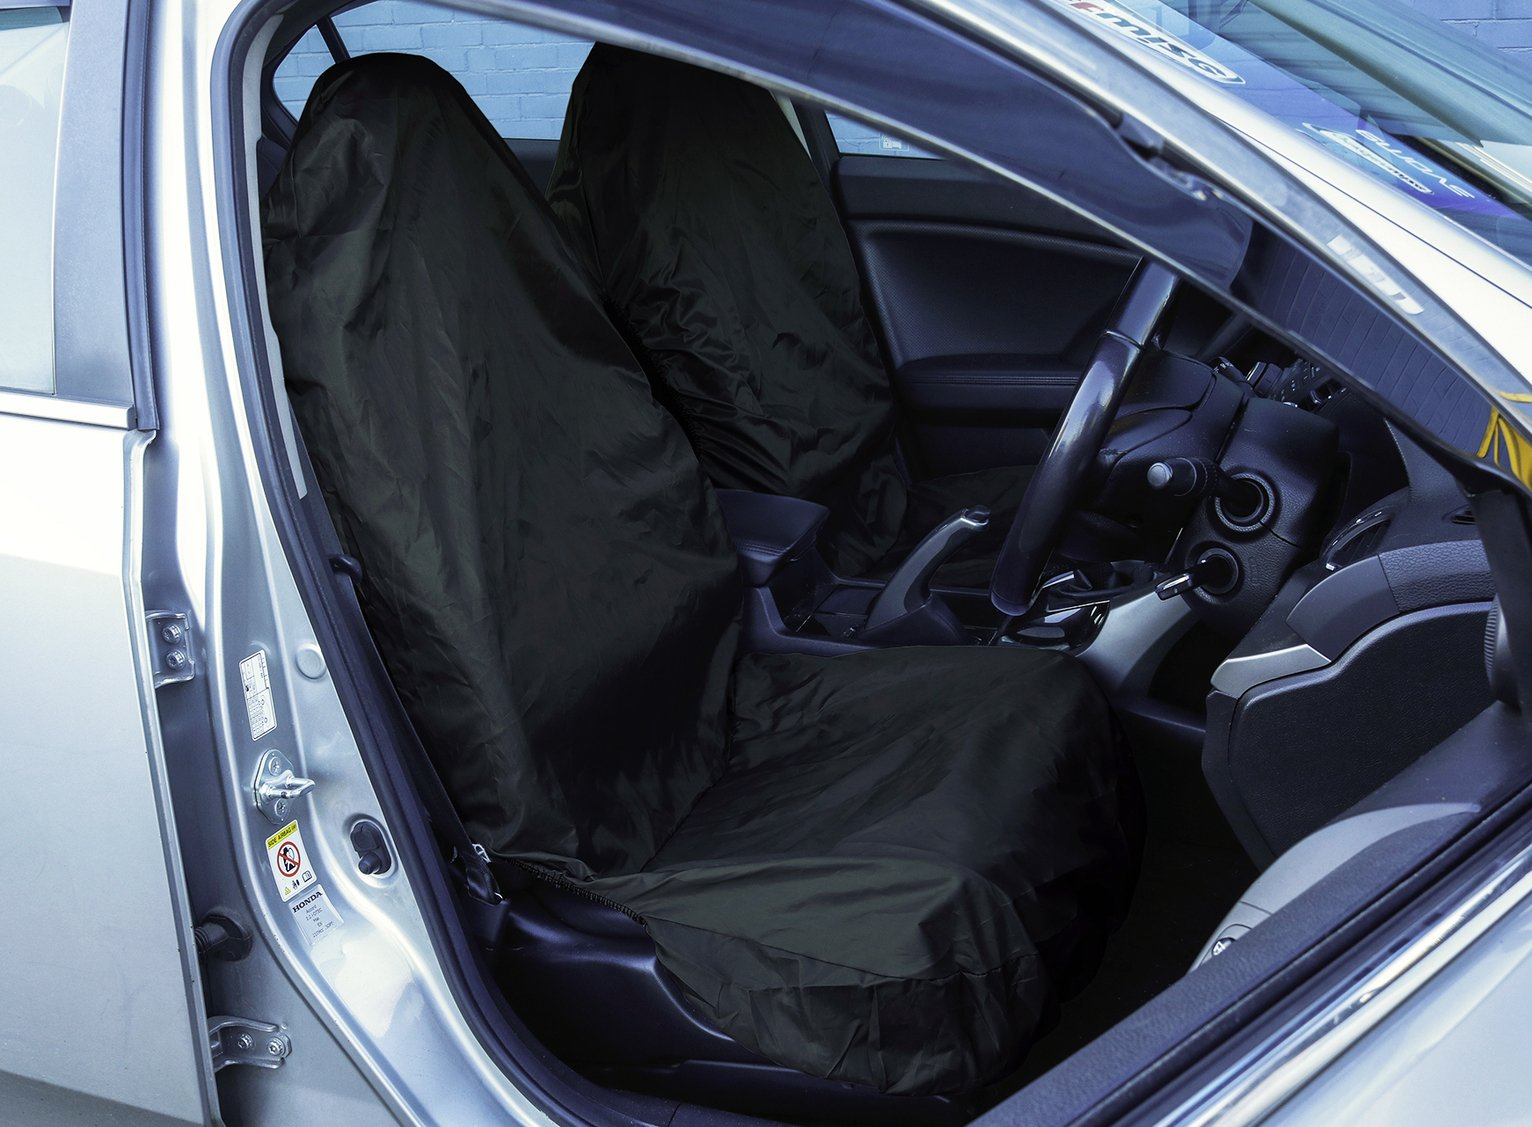 Streetwize Water Resistant 2 Front Car Seat Covers – Black